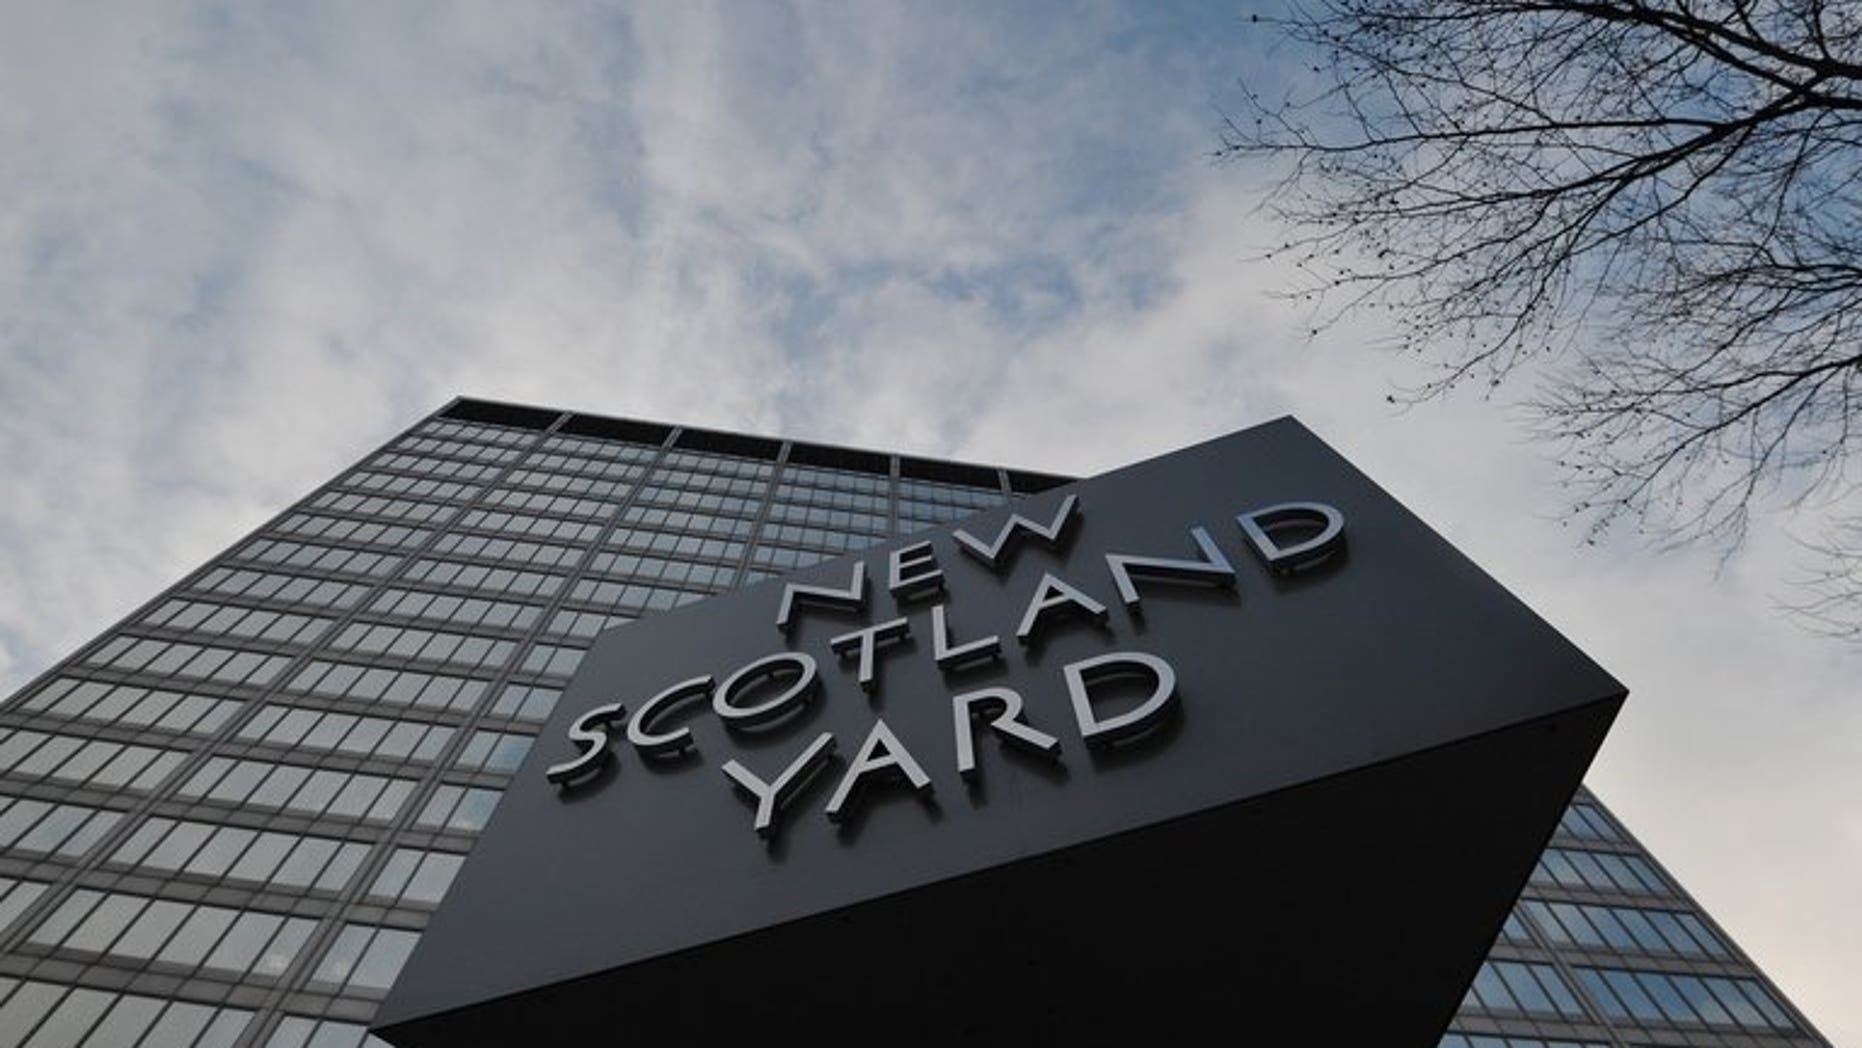 The Metropolitan Police headquarters, in central London, pictured on January 11, 2013. Terror police have charged two men under the 2000 Terrorism Act following their arrest in Dover last Monday, Scotland Yard announced.